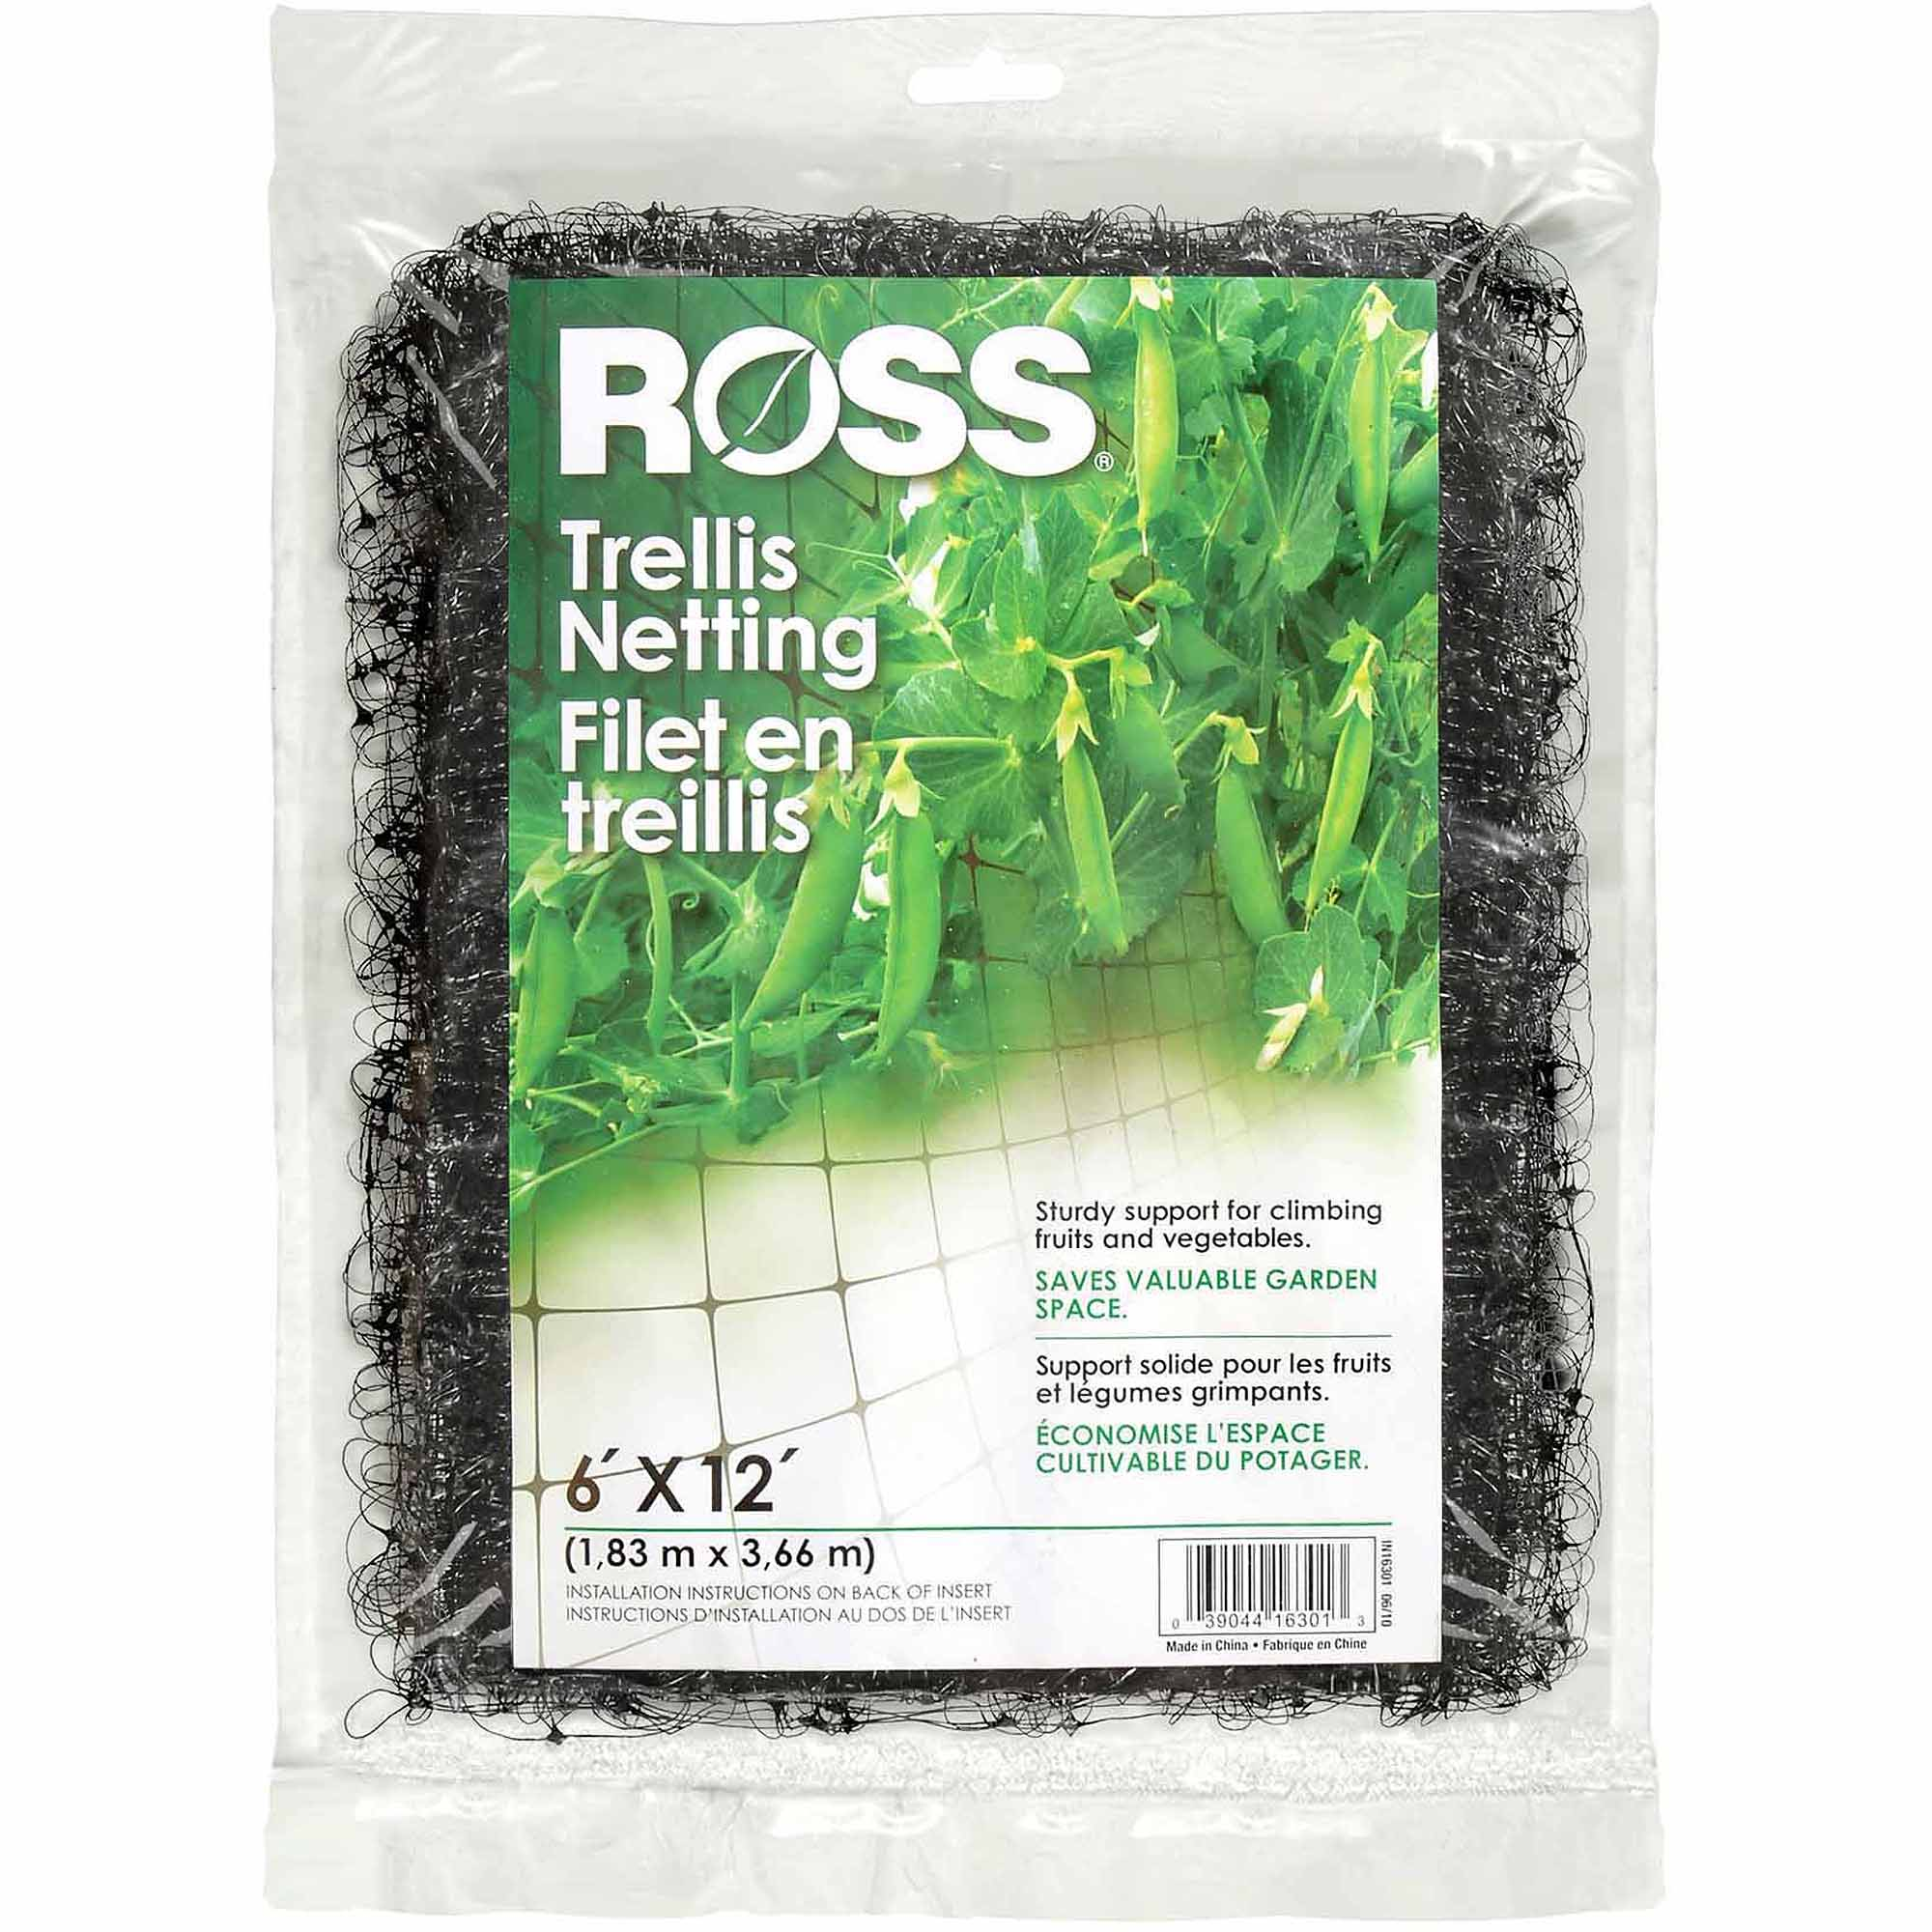 Ross Easy Gardener Weedblock 6' x 12' Trellis Netting by EASY GARDENER/WEEDBLOCK